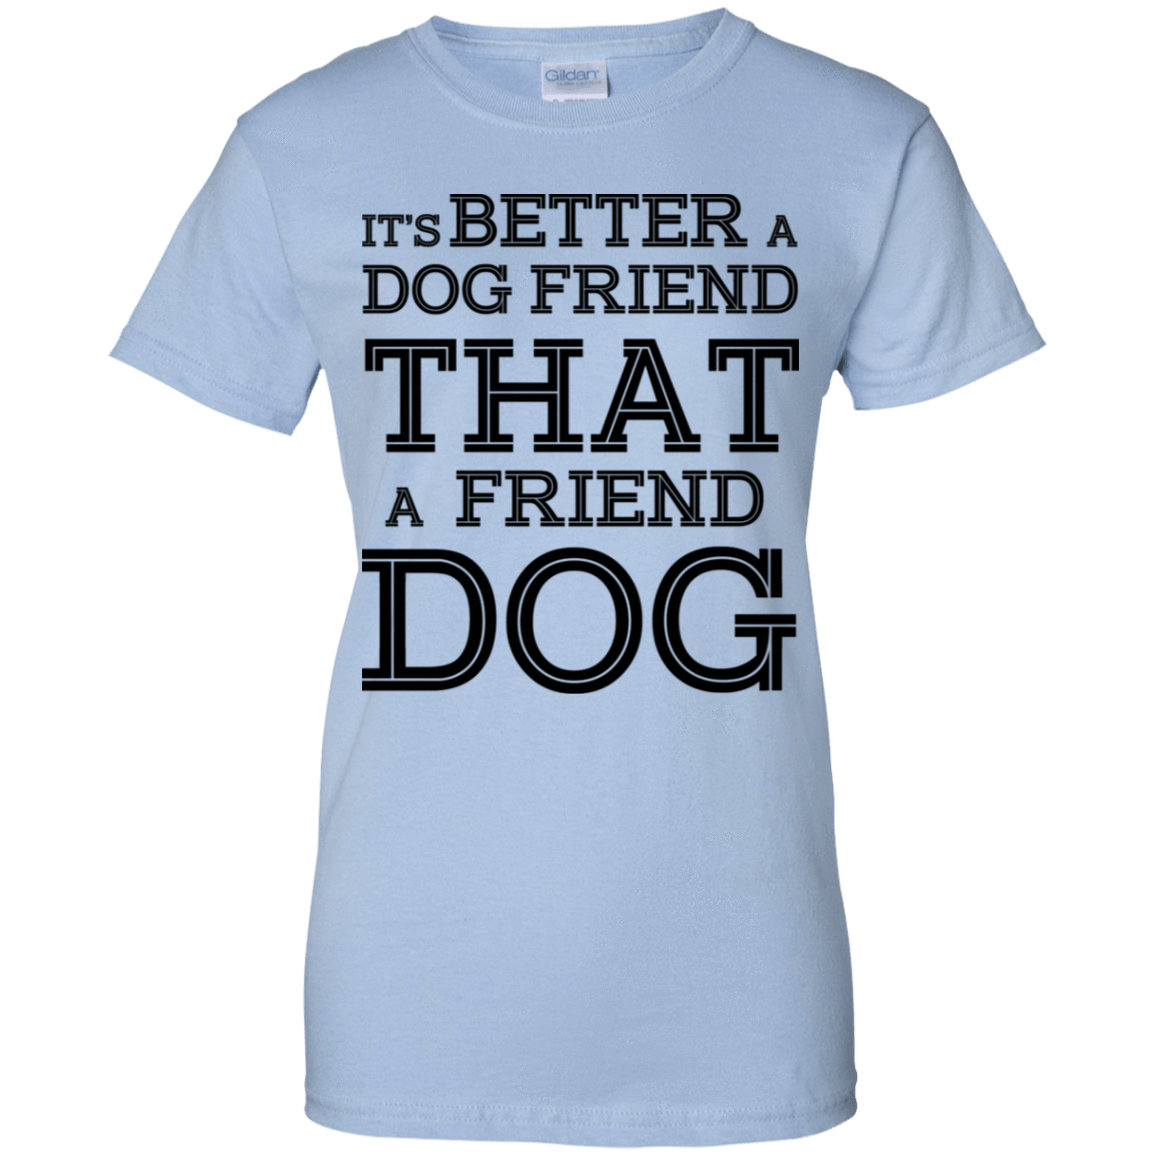 It's Better A Dog Friend That A Friend Dog 939-9257-73564858-44716 - Tee Ript